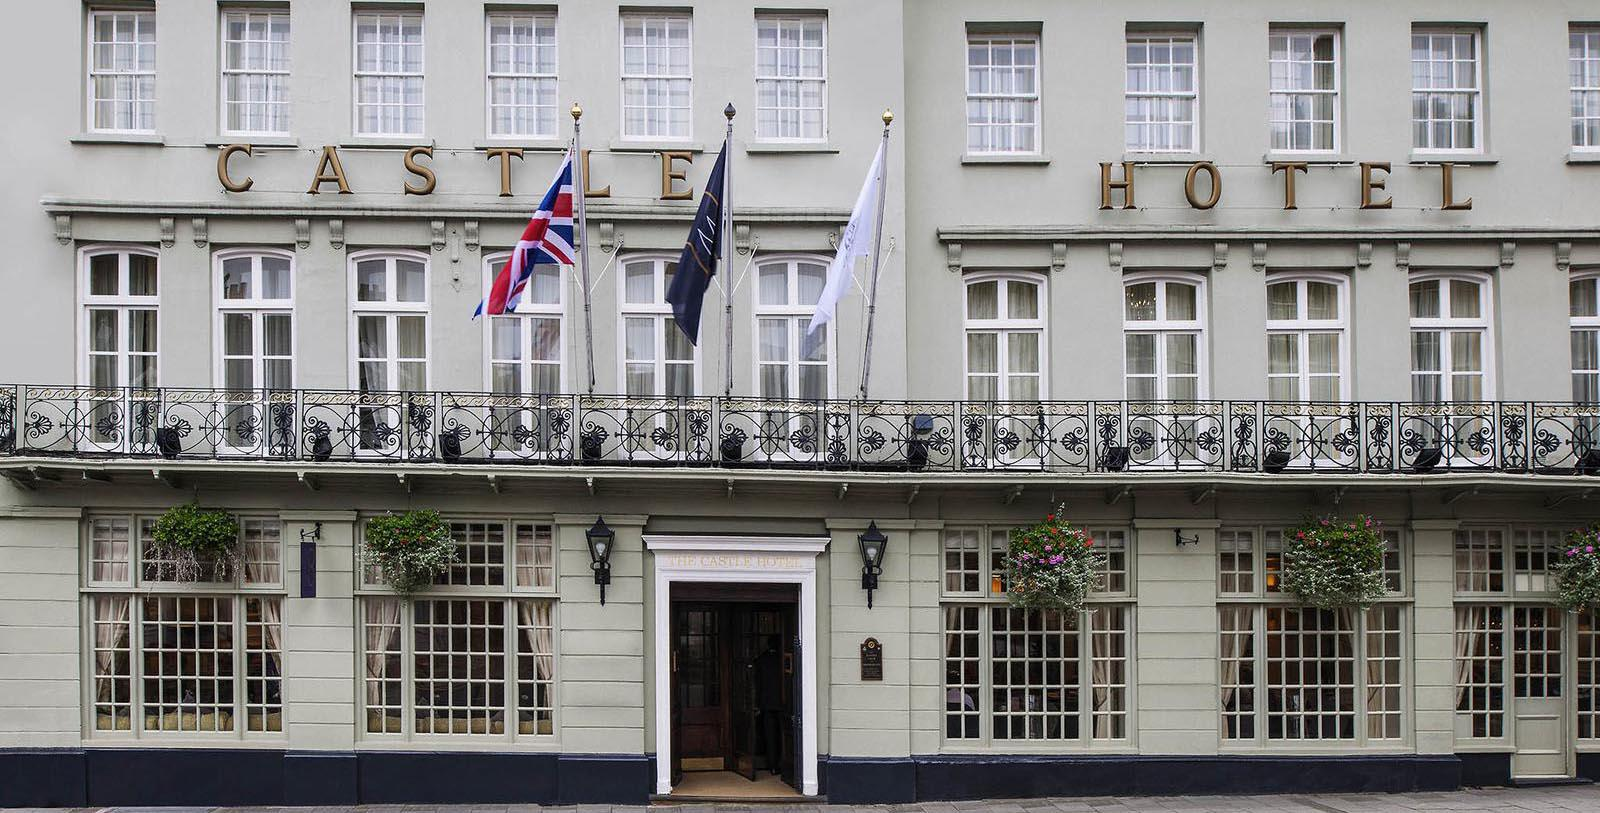 Image of hotel exterior Castle Hotel Windsor, 1528, Member of Historic Hotels Worldwide, in London, United Kingdom, Special Offers, Discounted Rates, Families, Romantic Escape, Honeymoons, Anniversaries, Reunions